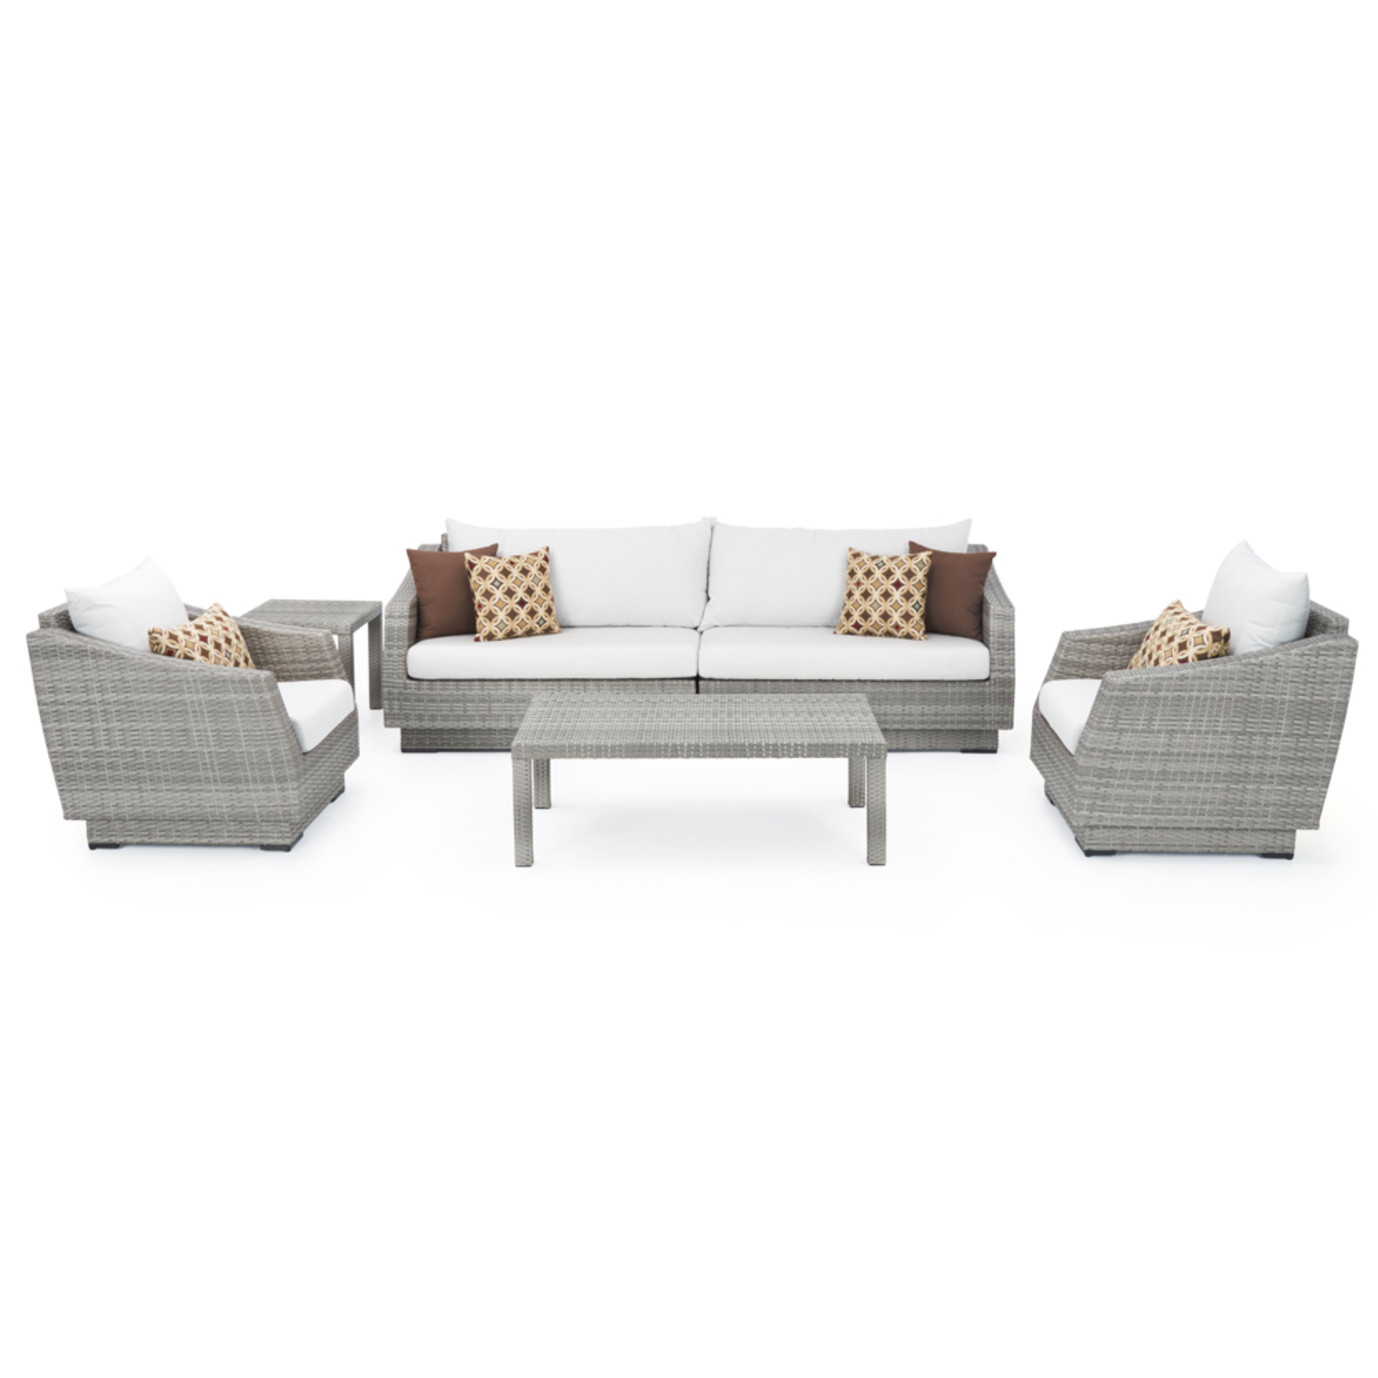 Cannes™ 6 Piece Sofa & Club Chair Set - Moroccan Cream